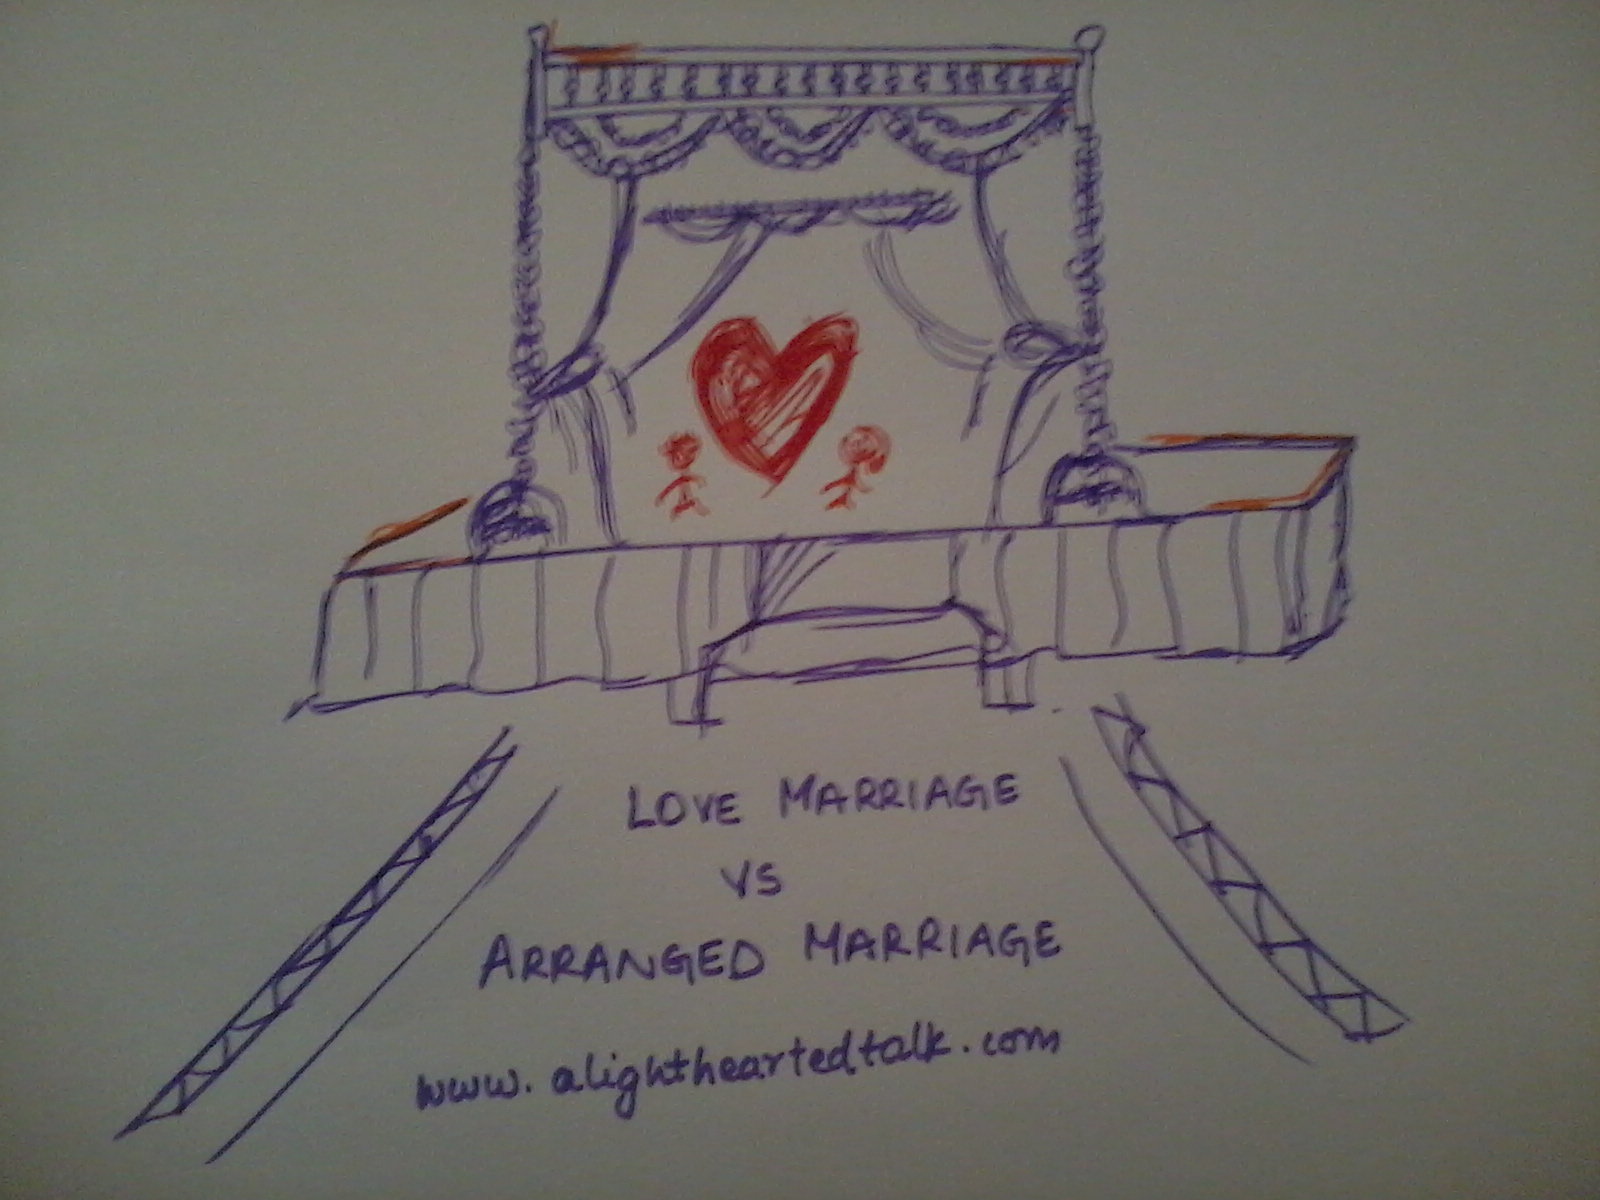 essays on arranged marriage and love marriage Arranged marriage versus love marriage an arranged marriage is a marriage planned and agreed to by the families or guardians of the bride and groom, who have no say in the matter themselves it is set up by parents of both the bride to arrange the wedding for the newly couplesthere are still some.